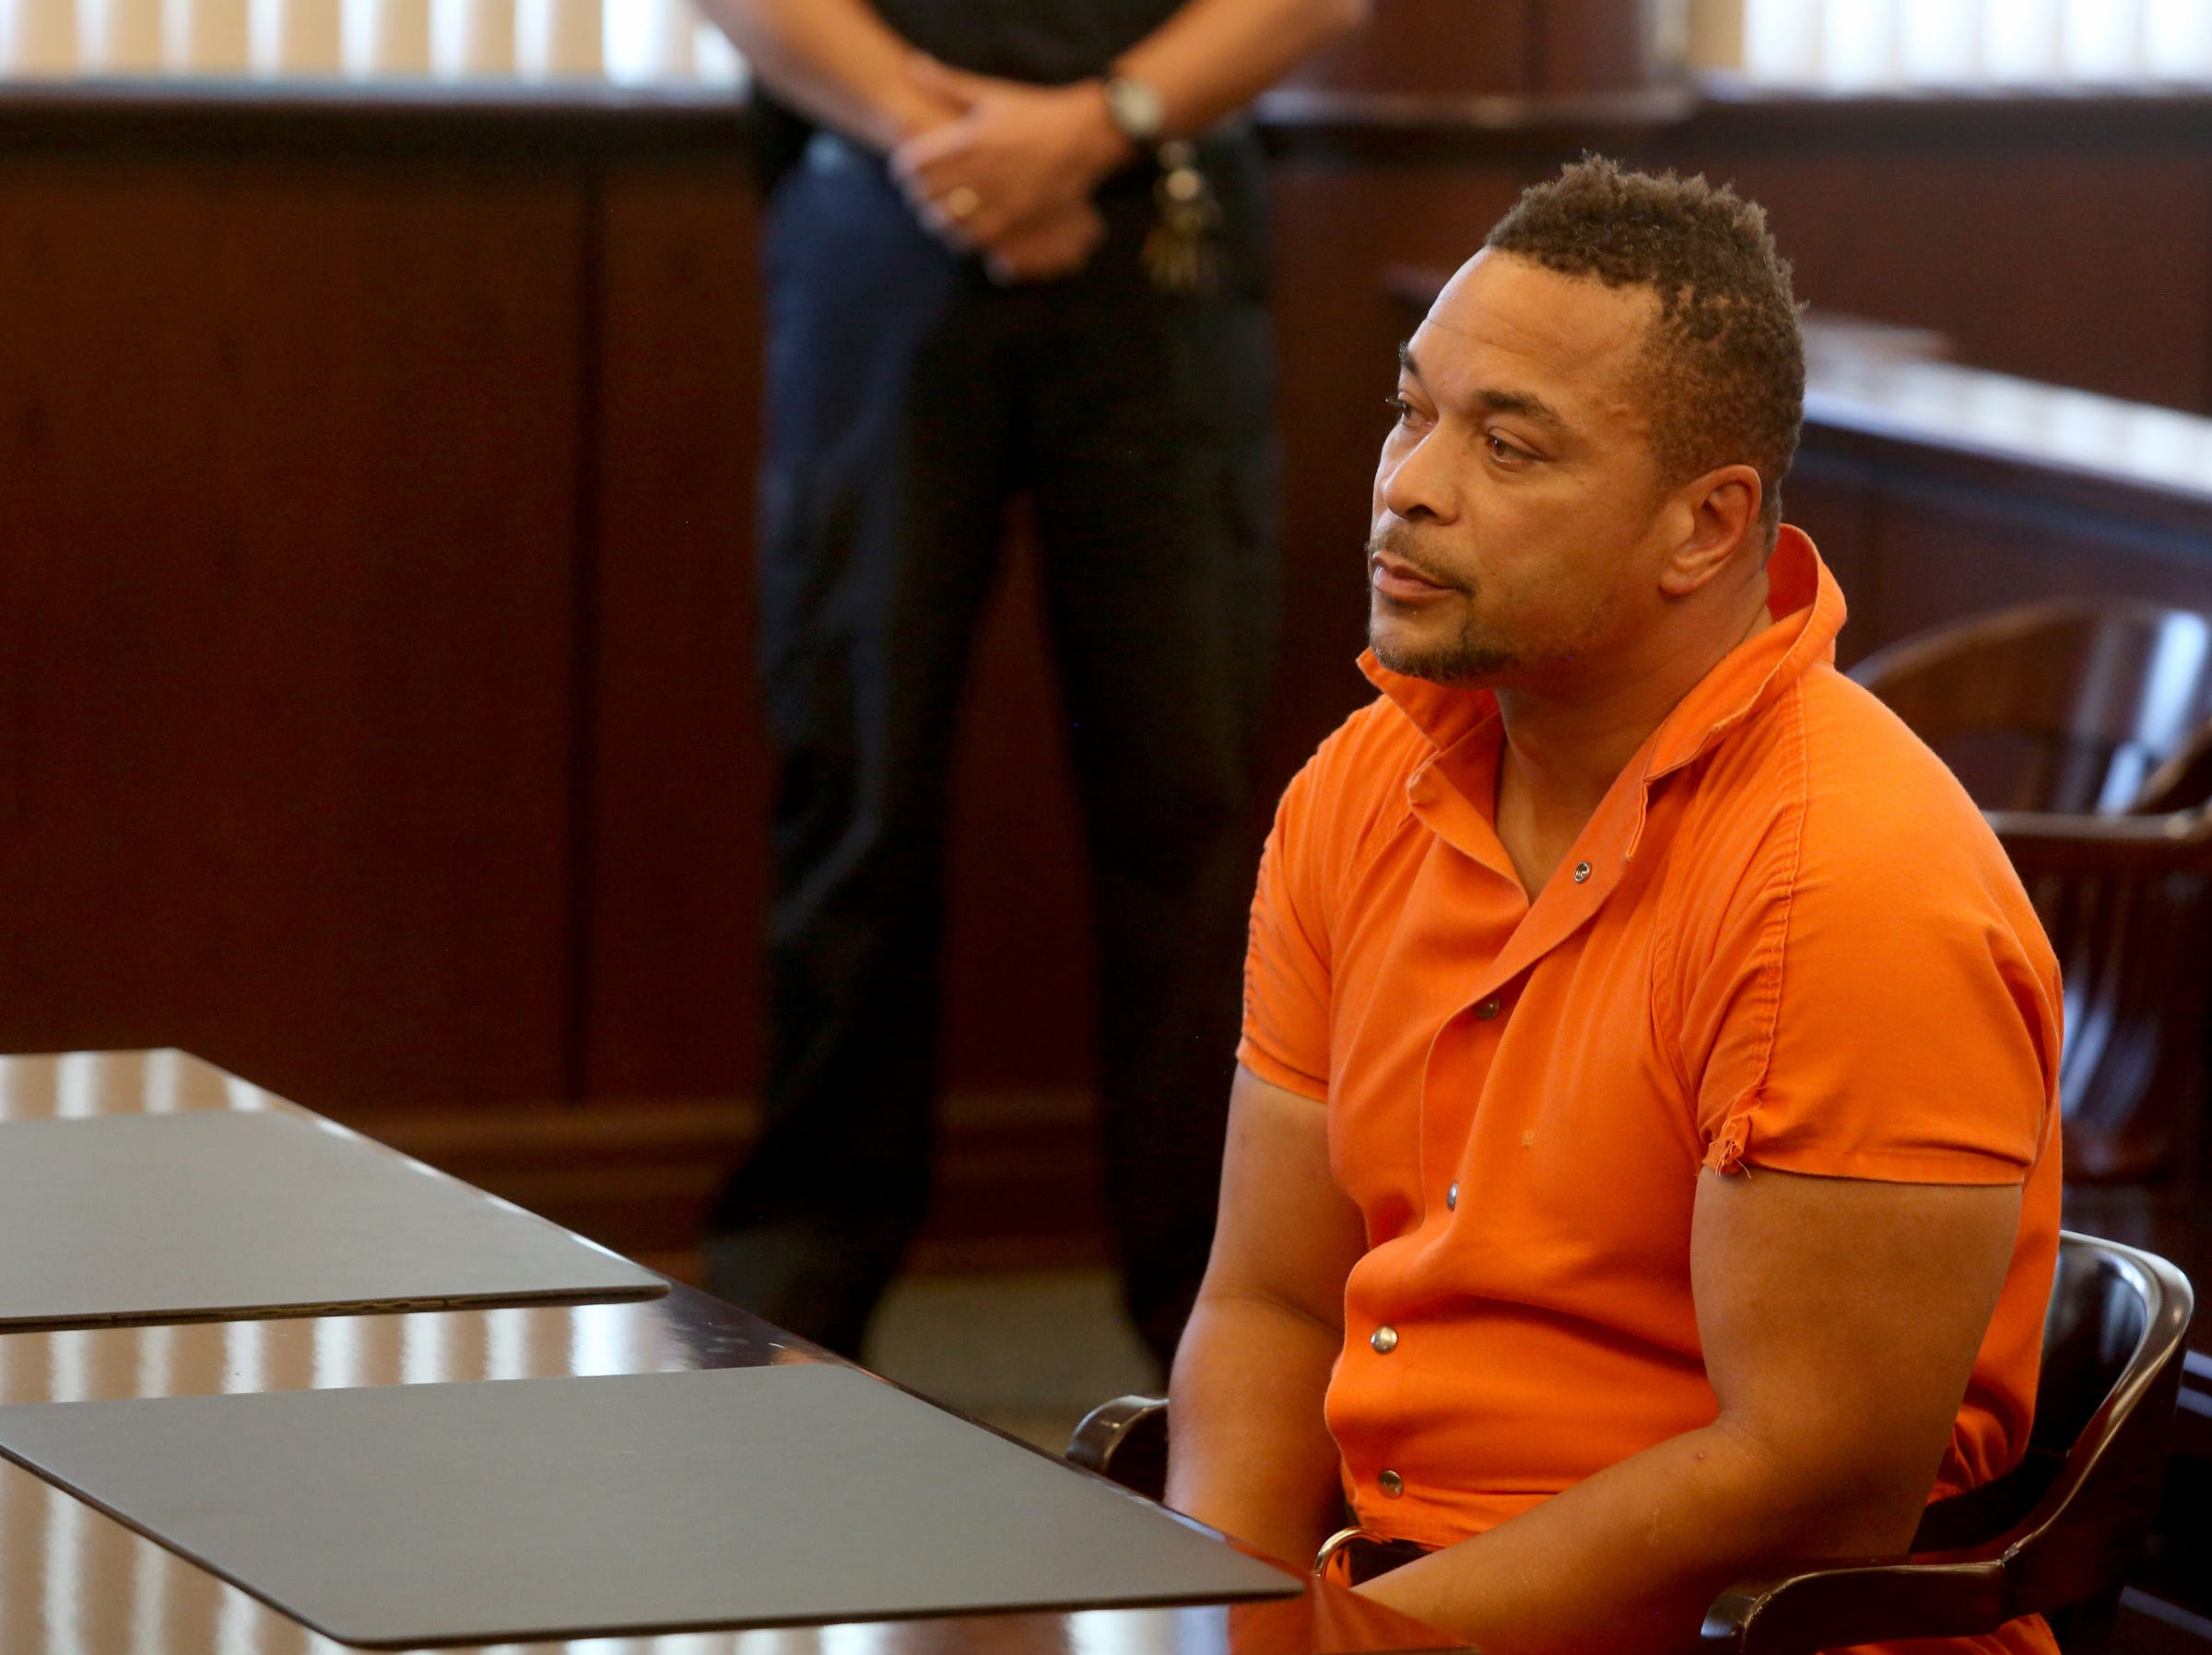 Family asked 2nd chance for suspect after he killed 1st wife